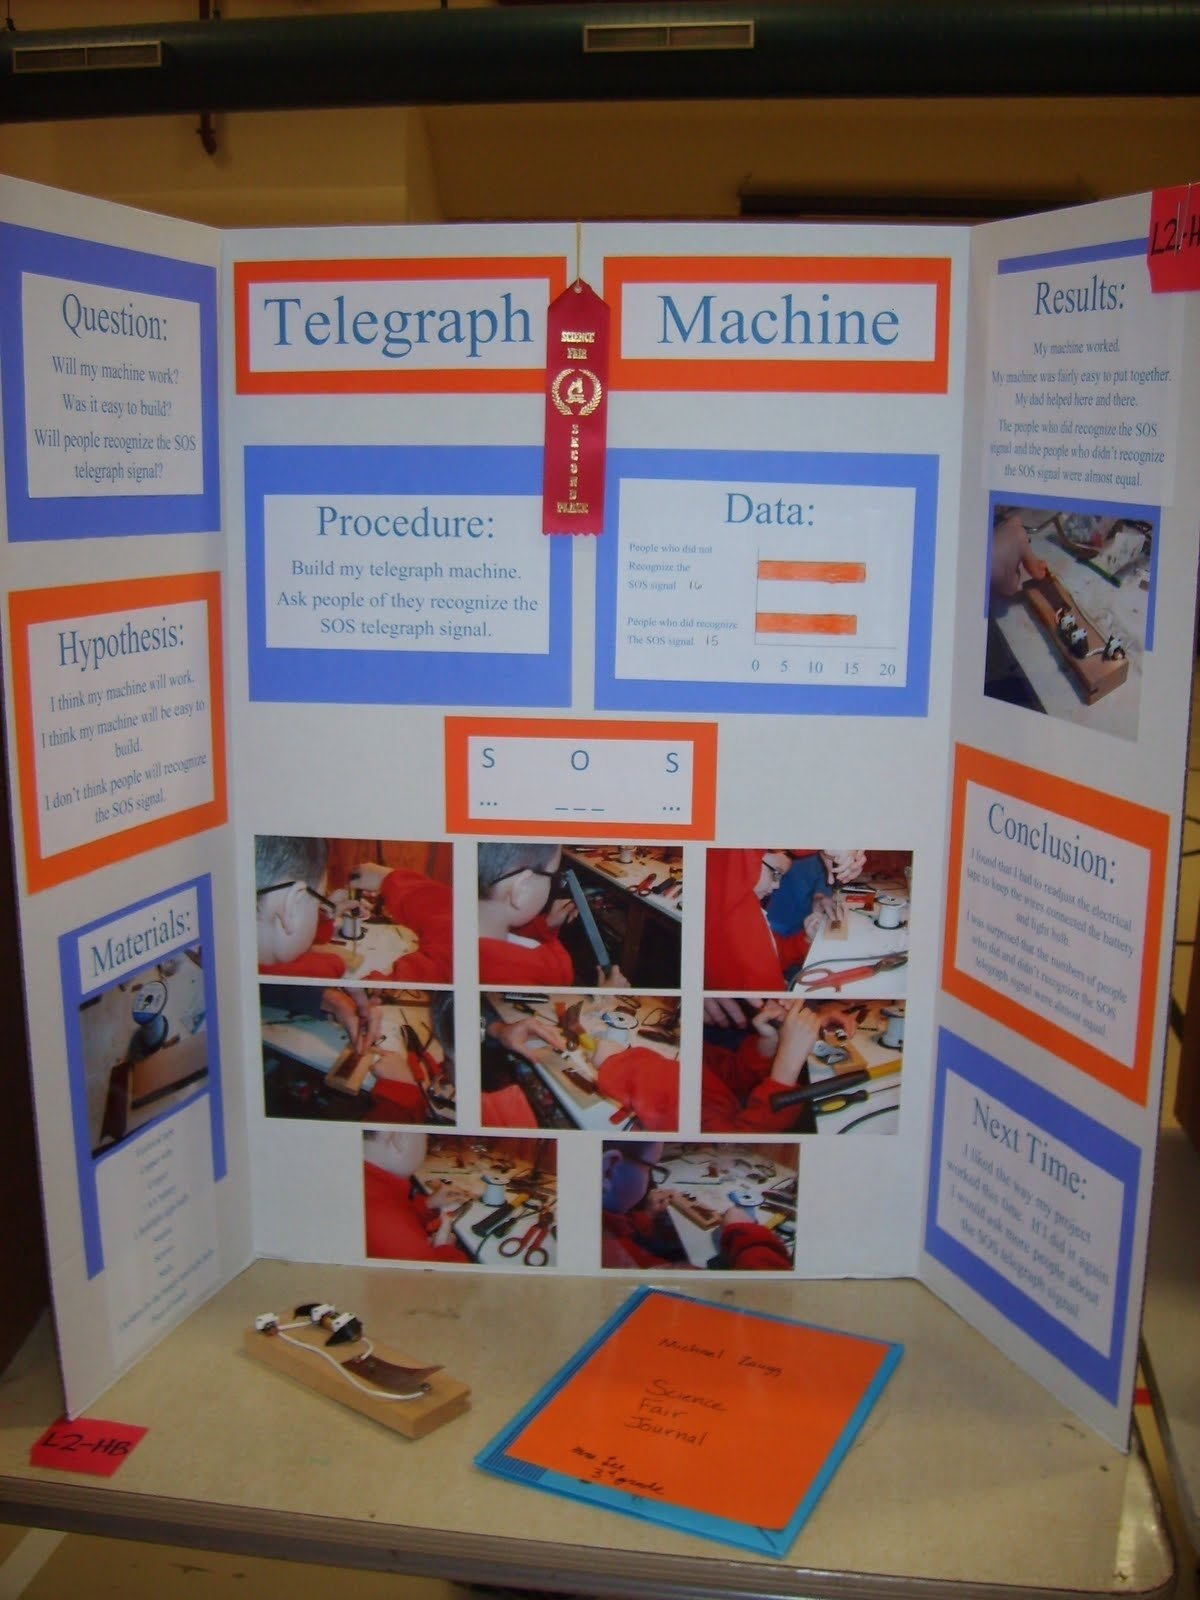 10 Most Popular Science Fair Projects Ideas For 3Rd Grade easy third grade science projects research paper service 1 2020